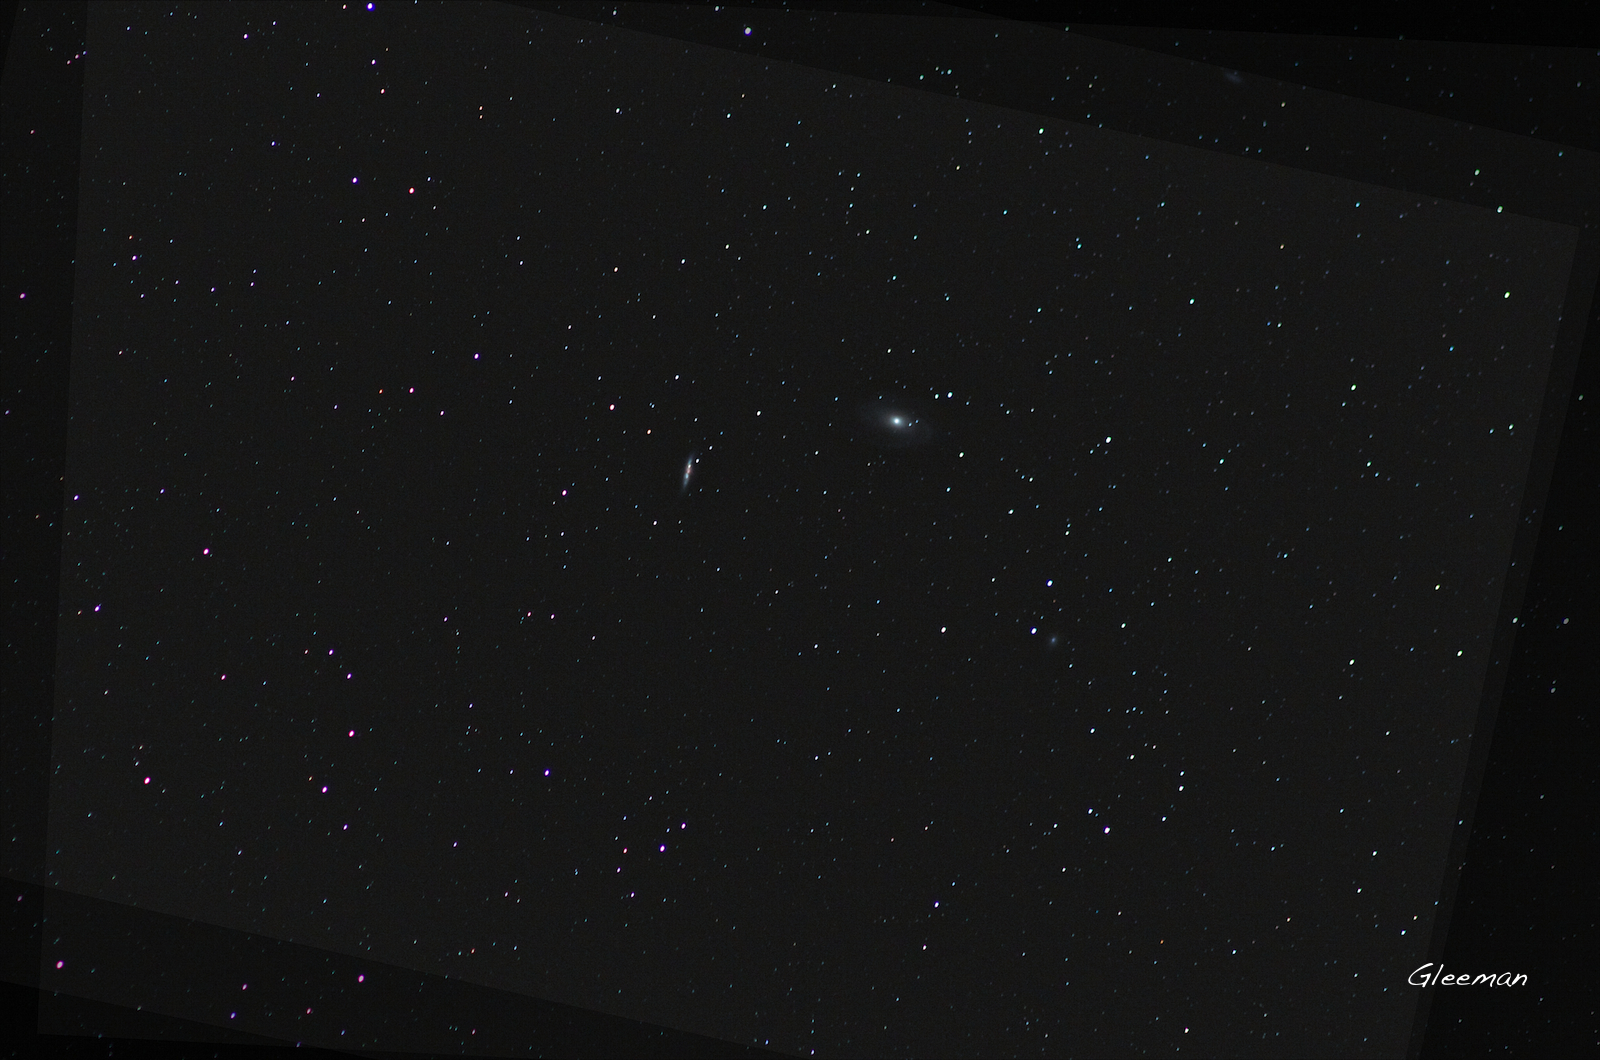 Supernova (SN 2014J) in M82 Pentax K5 + O-GPS1 + Tamron Adaptall-2 SP 300mm f/2.8 LD IF (60B) LPS-P2 filter